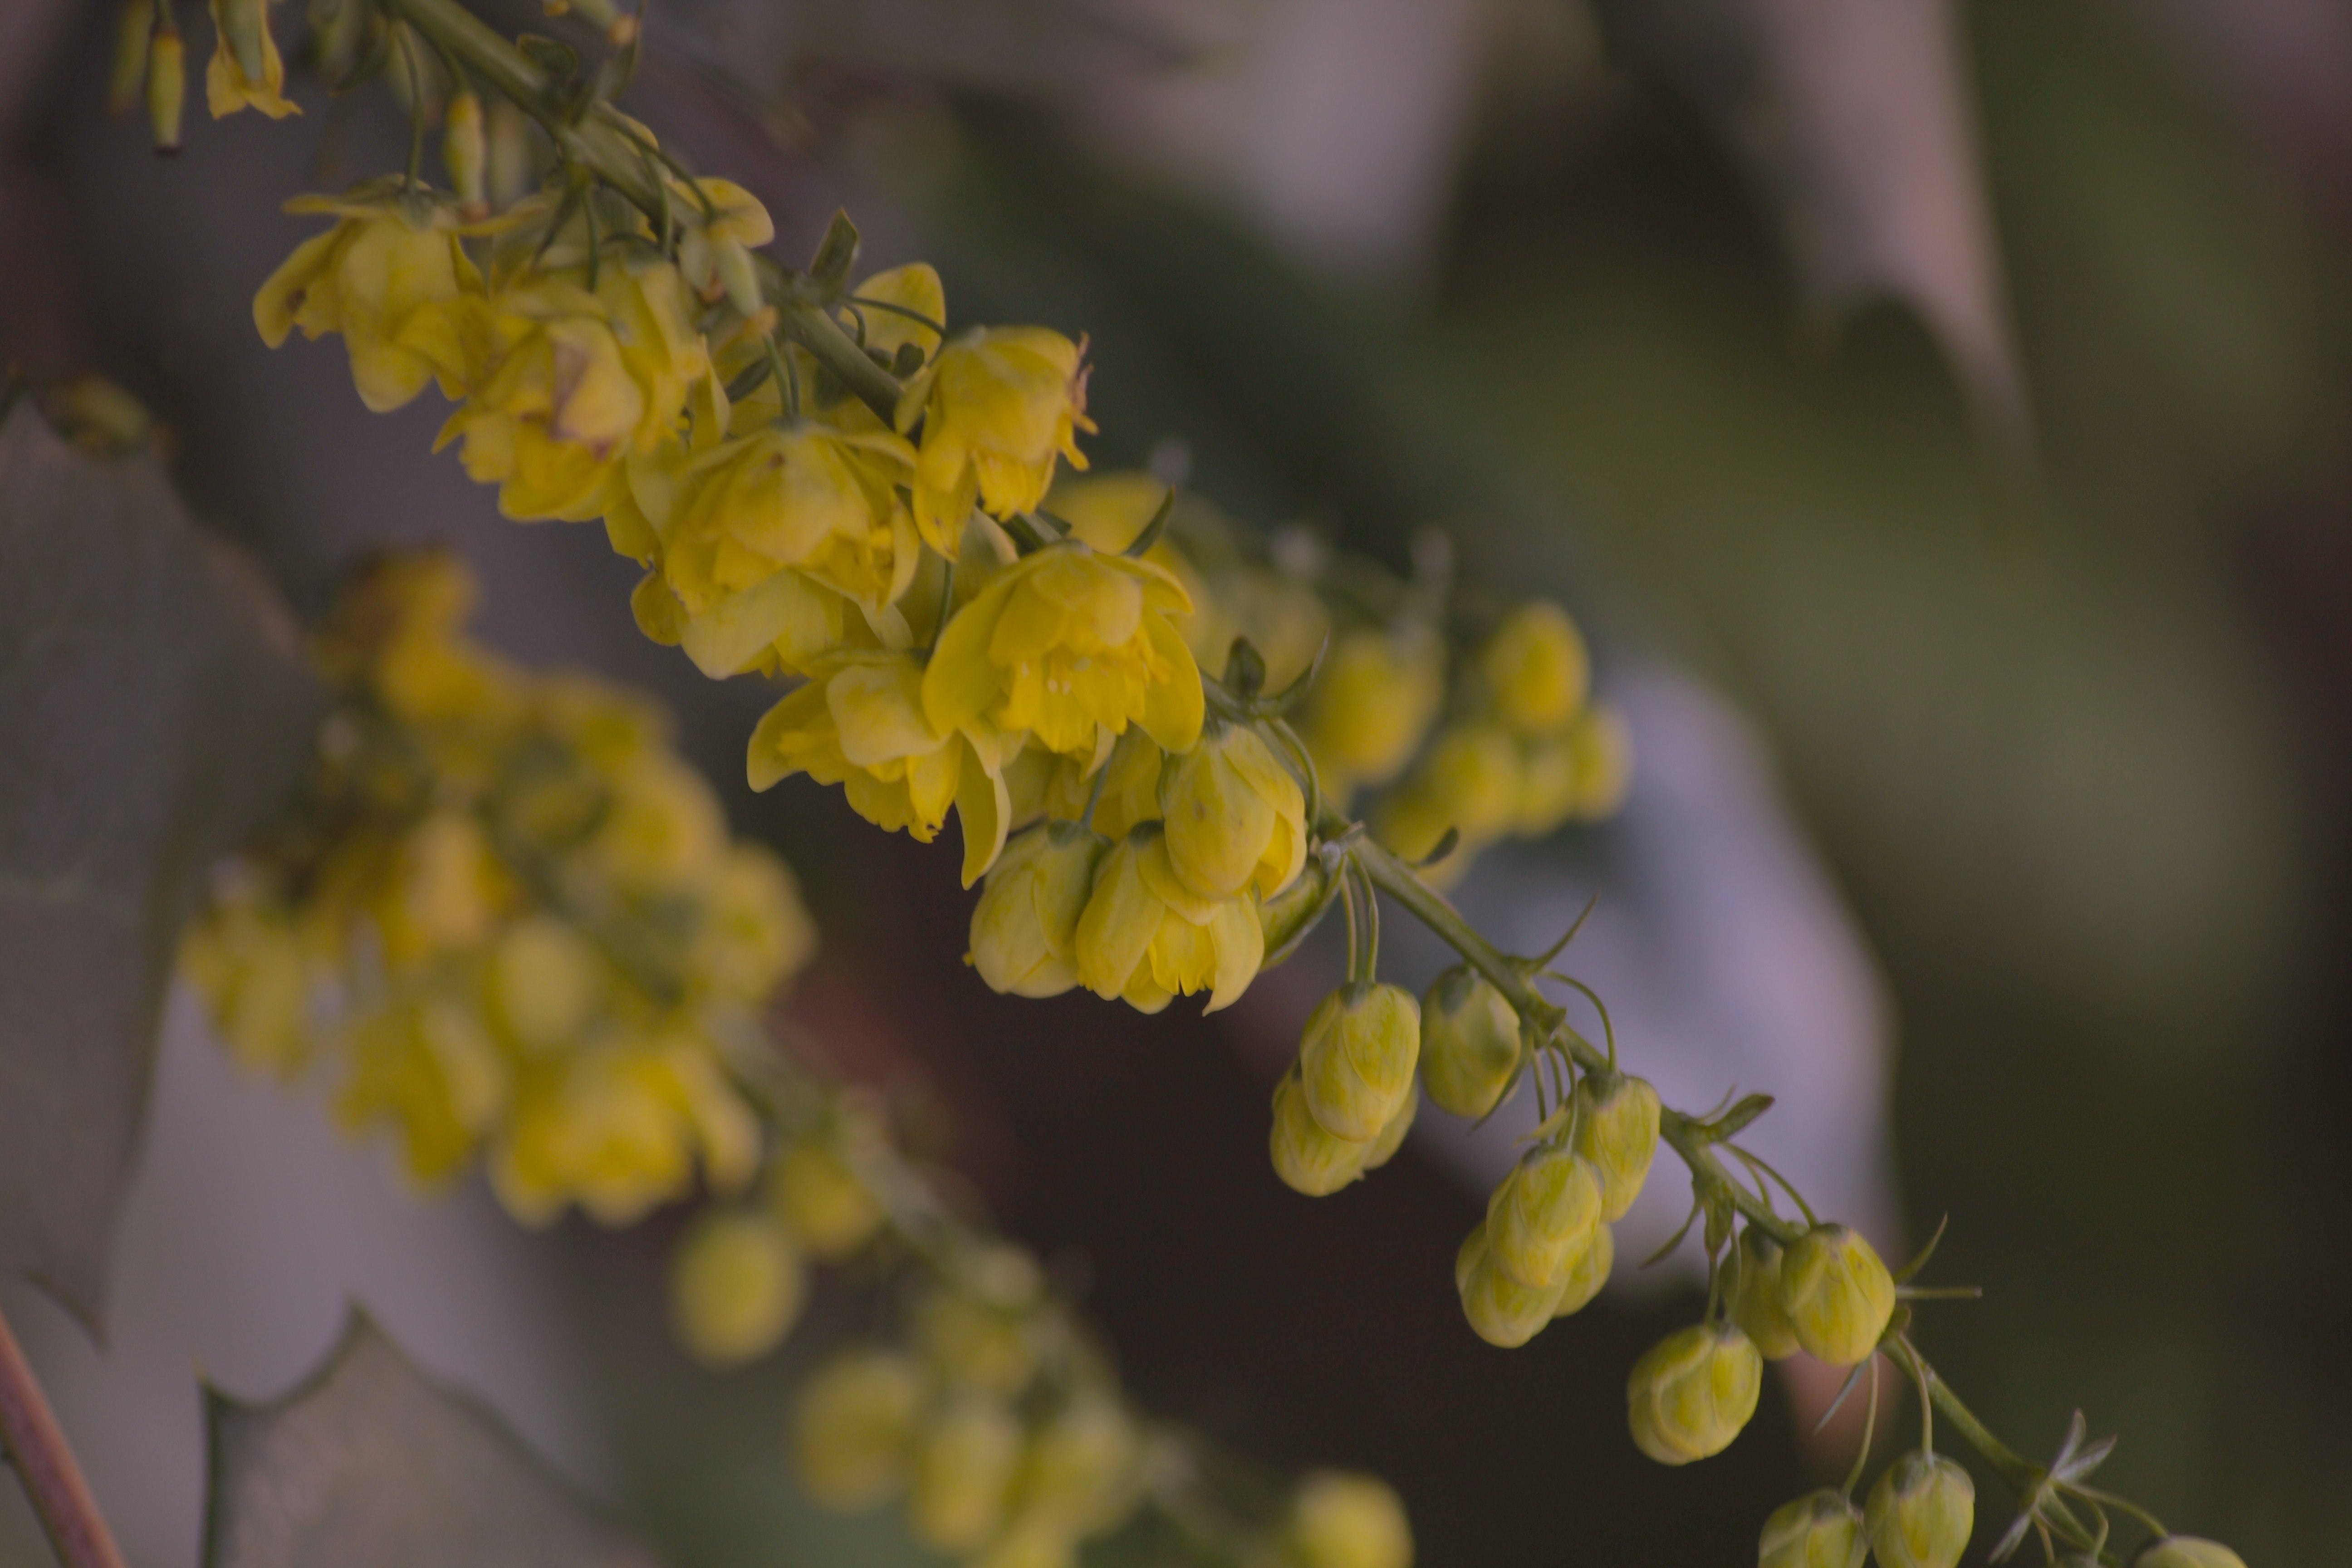 Free stock photo of nature photography, yellow flowers